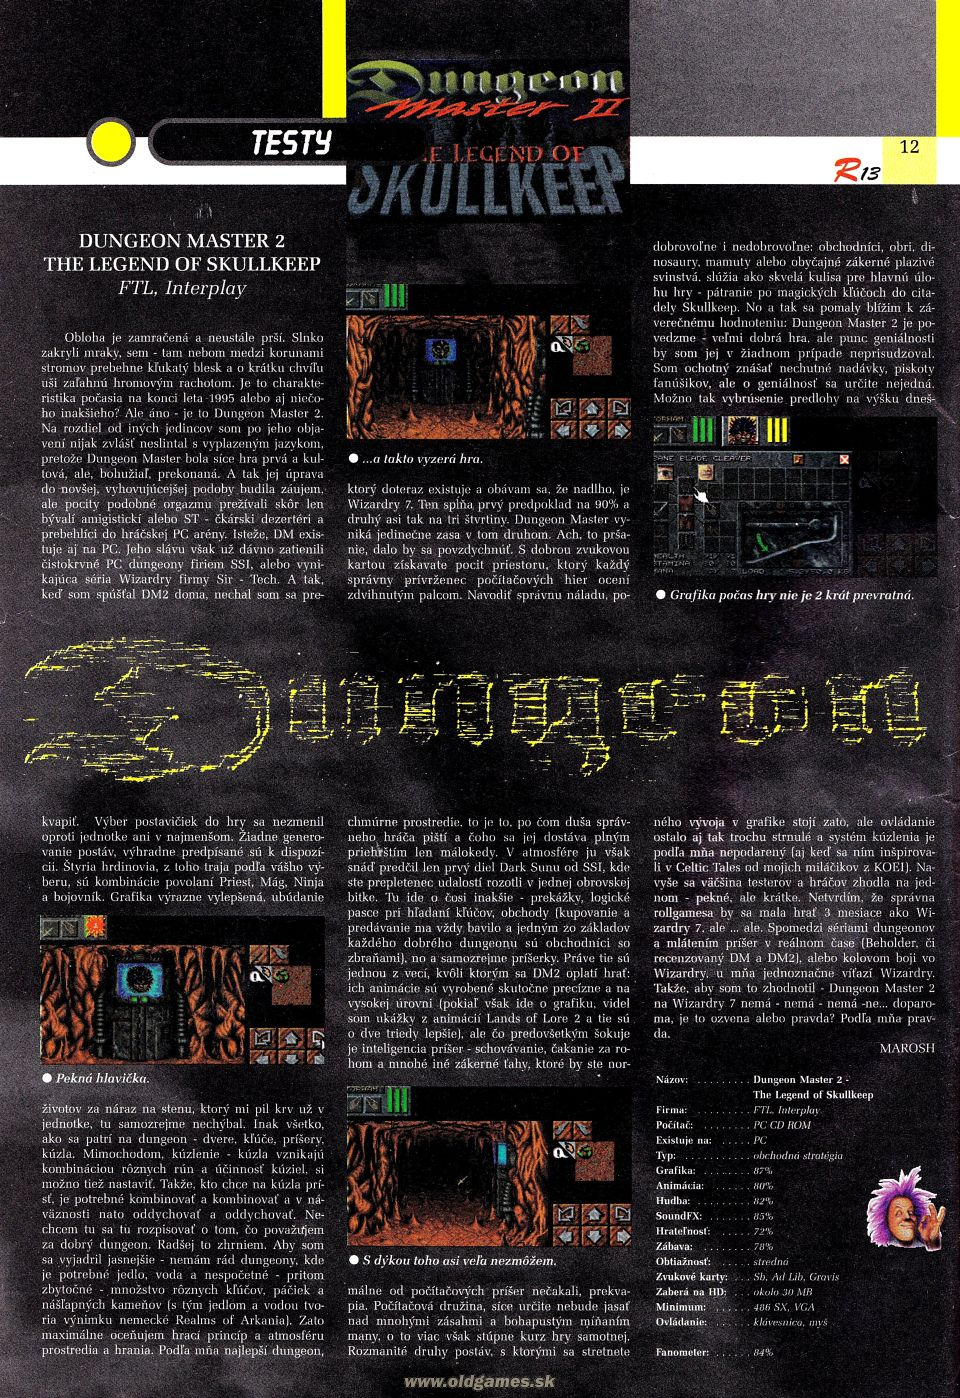 Dungeon Master II for PC Review published in Czech magazine 'Riki', Issue #13 October 1995, Page 12